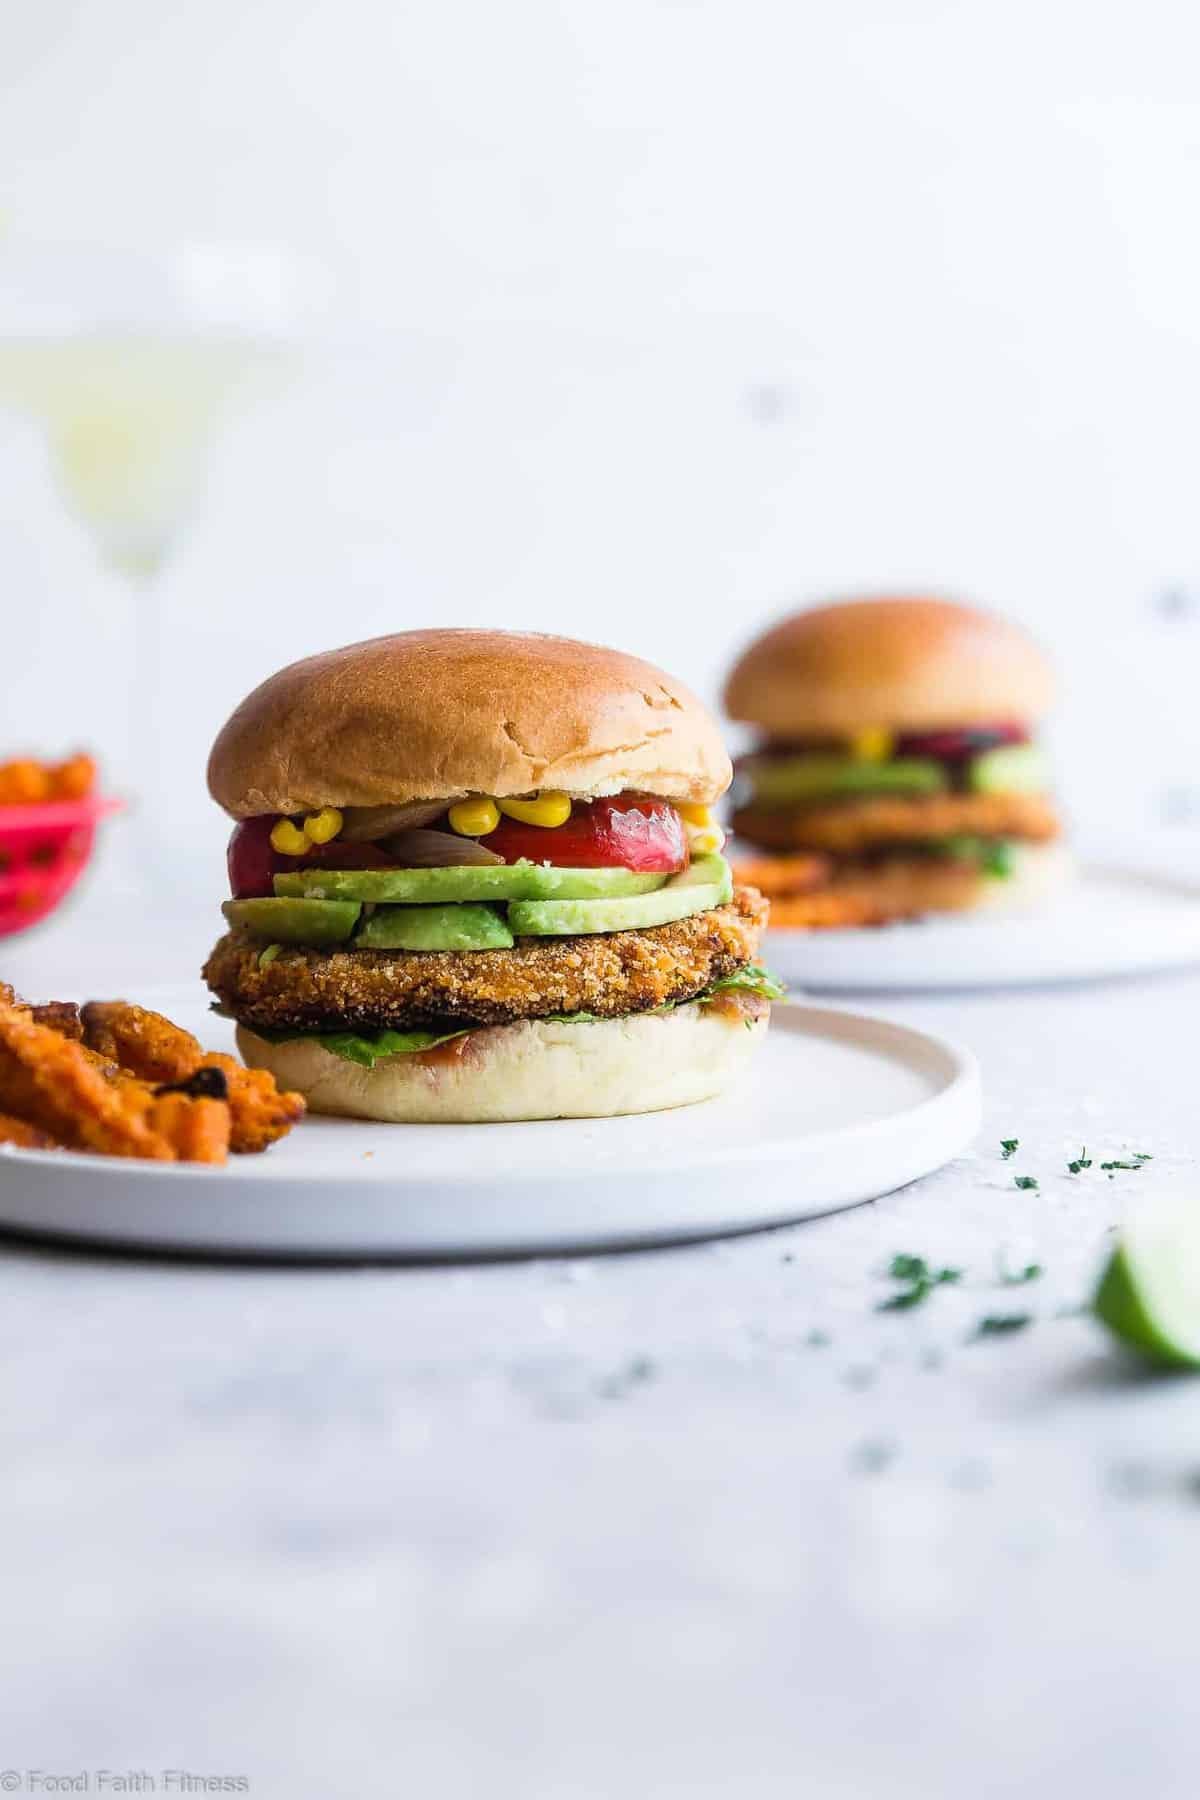 Mexican Sweet Potato Veggie Burgers - These easy homemade sweet potato veggie burgers are made from sweet potatoes coated with crunchy panko and finished with creamy avocado and grilled vegetables! Gluten free, vegan friendly and SERIOUSLY amazing! | #Foodfaithfitness | #Glutenfree #Vegan #Healthy #Veggieburger #DairyFree